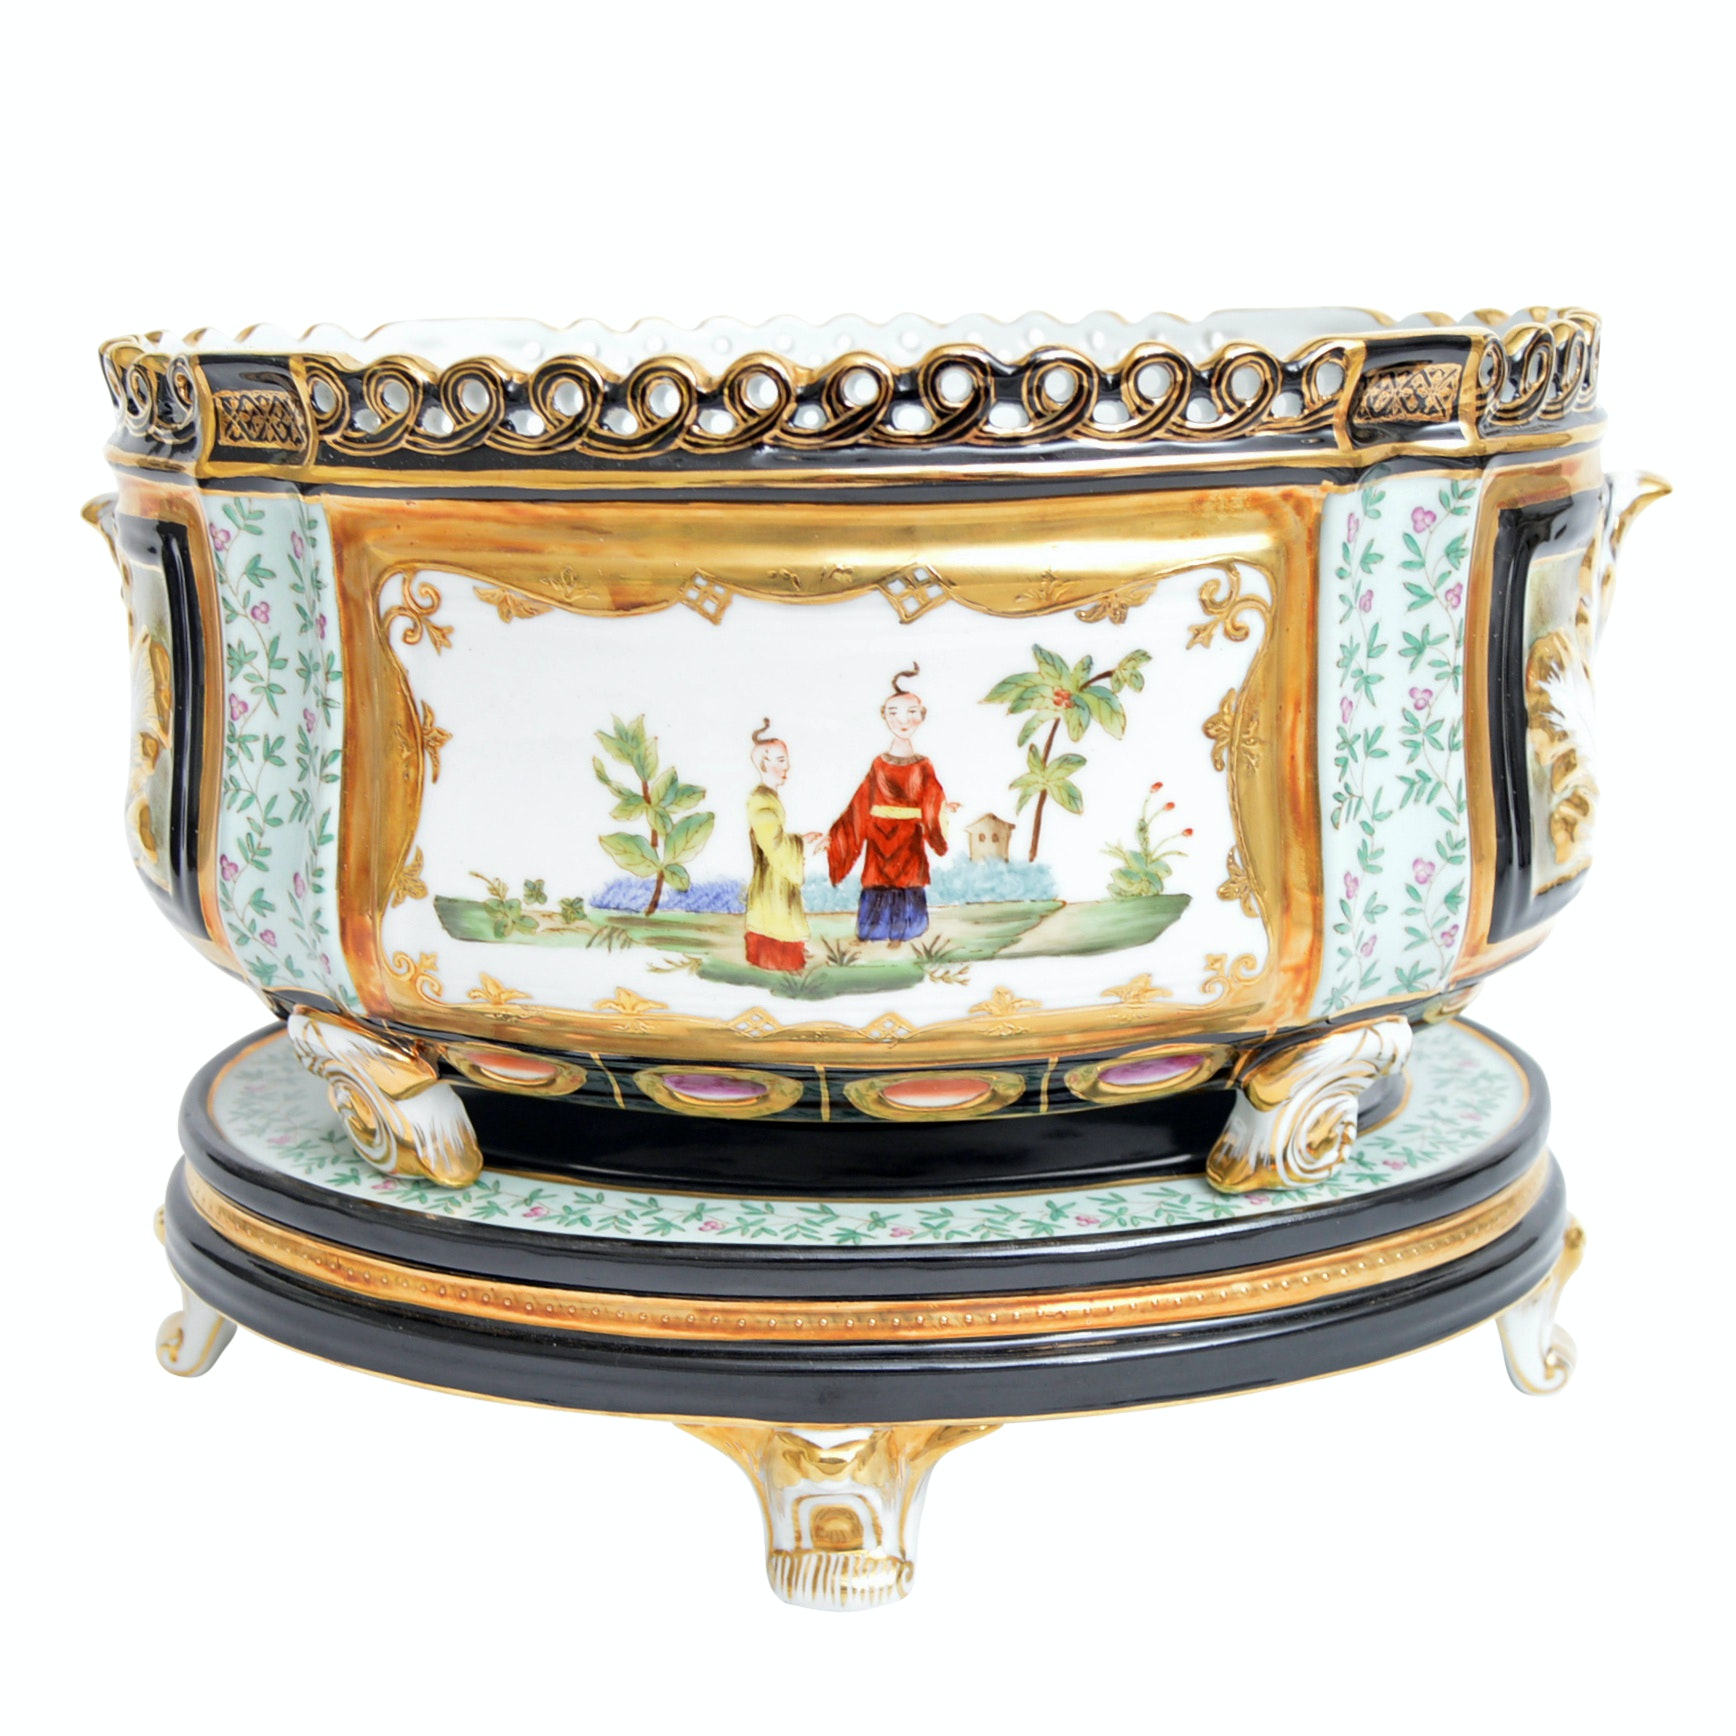 Chelsea House Sèvres Chinoiserie Decorated Porcelain Jardinière With Base